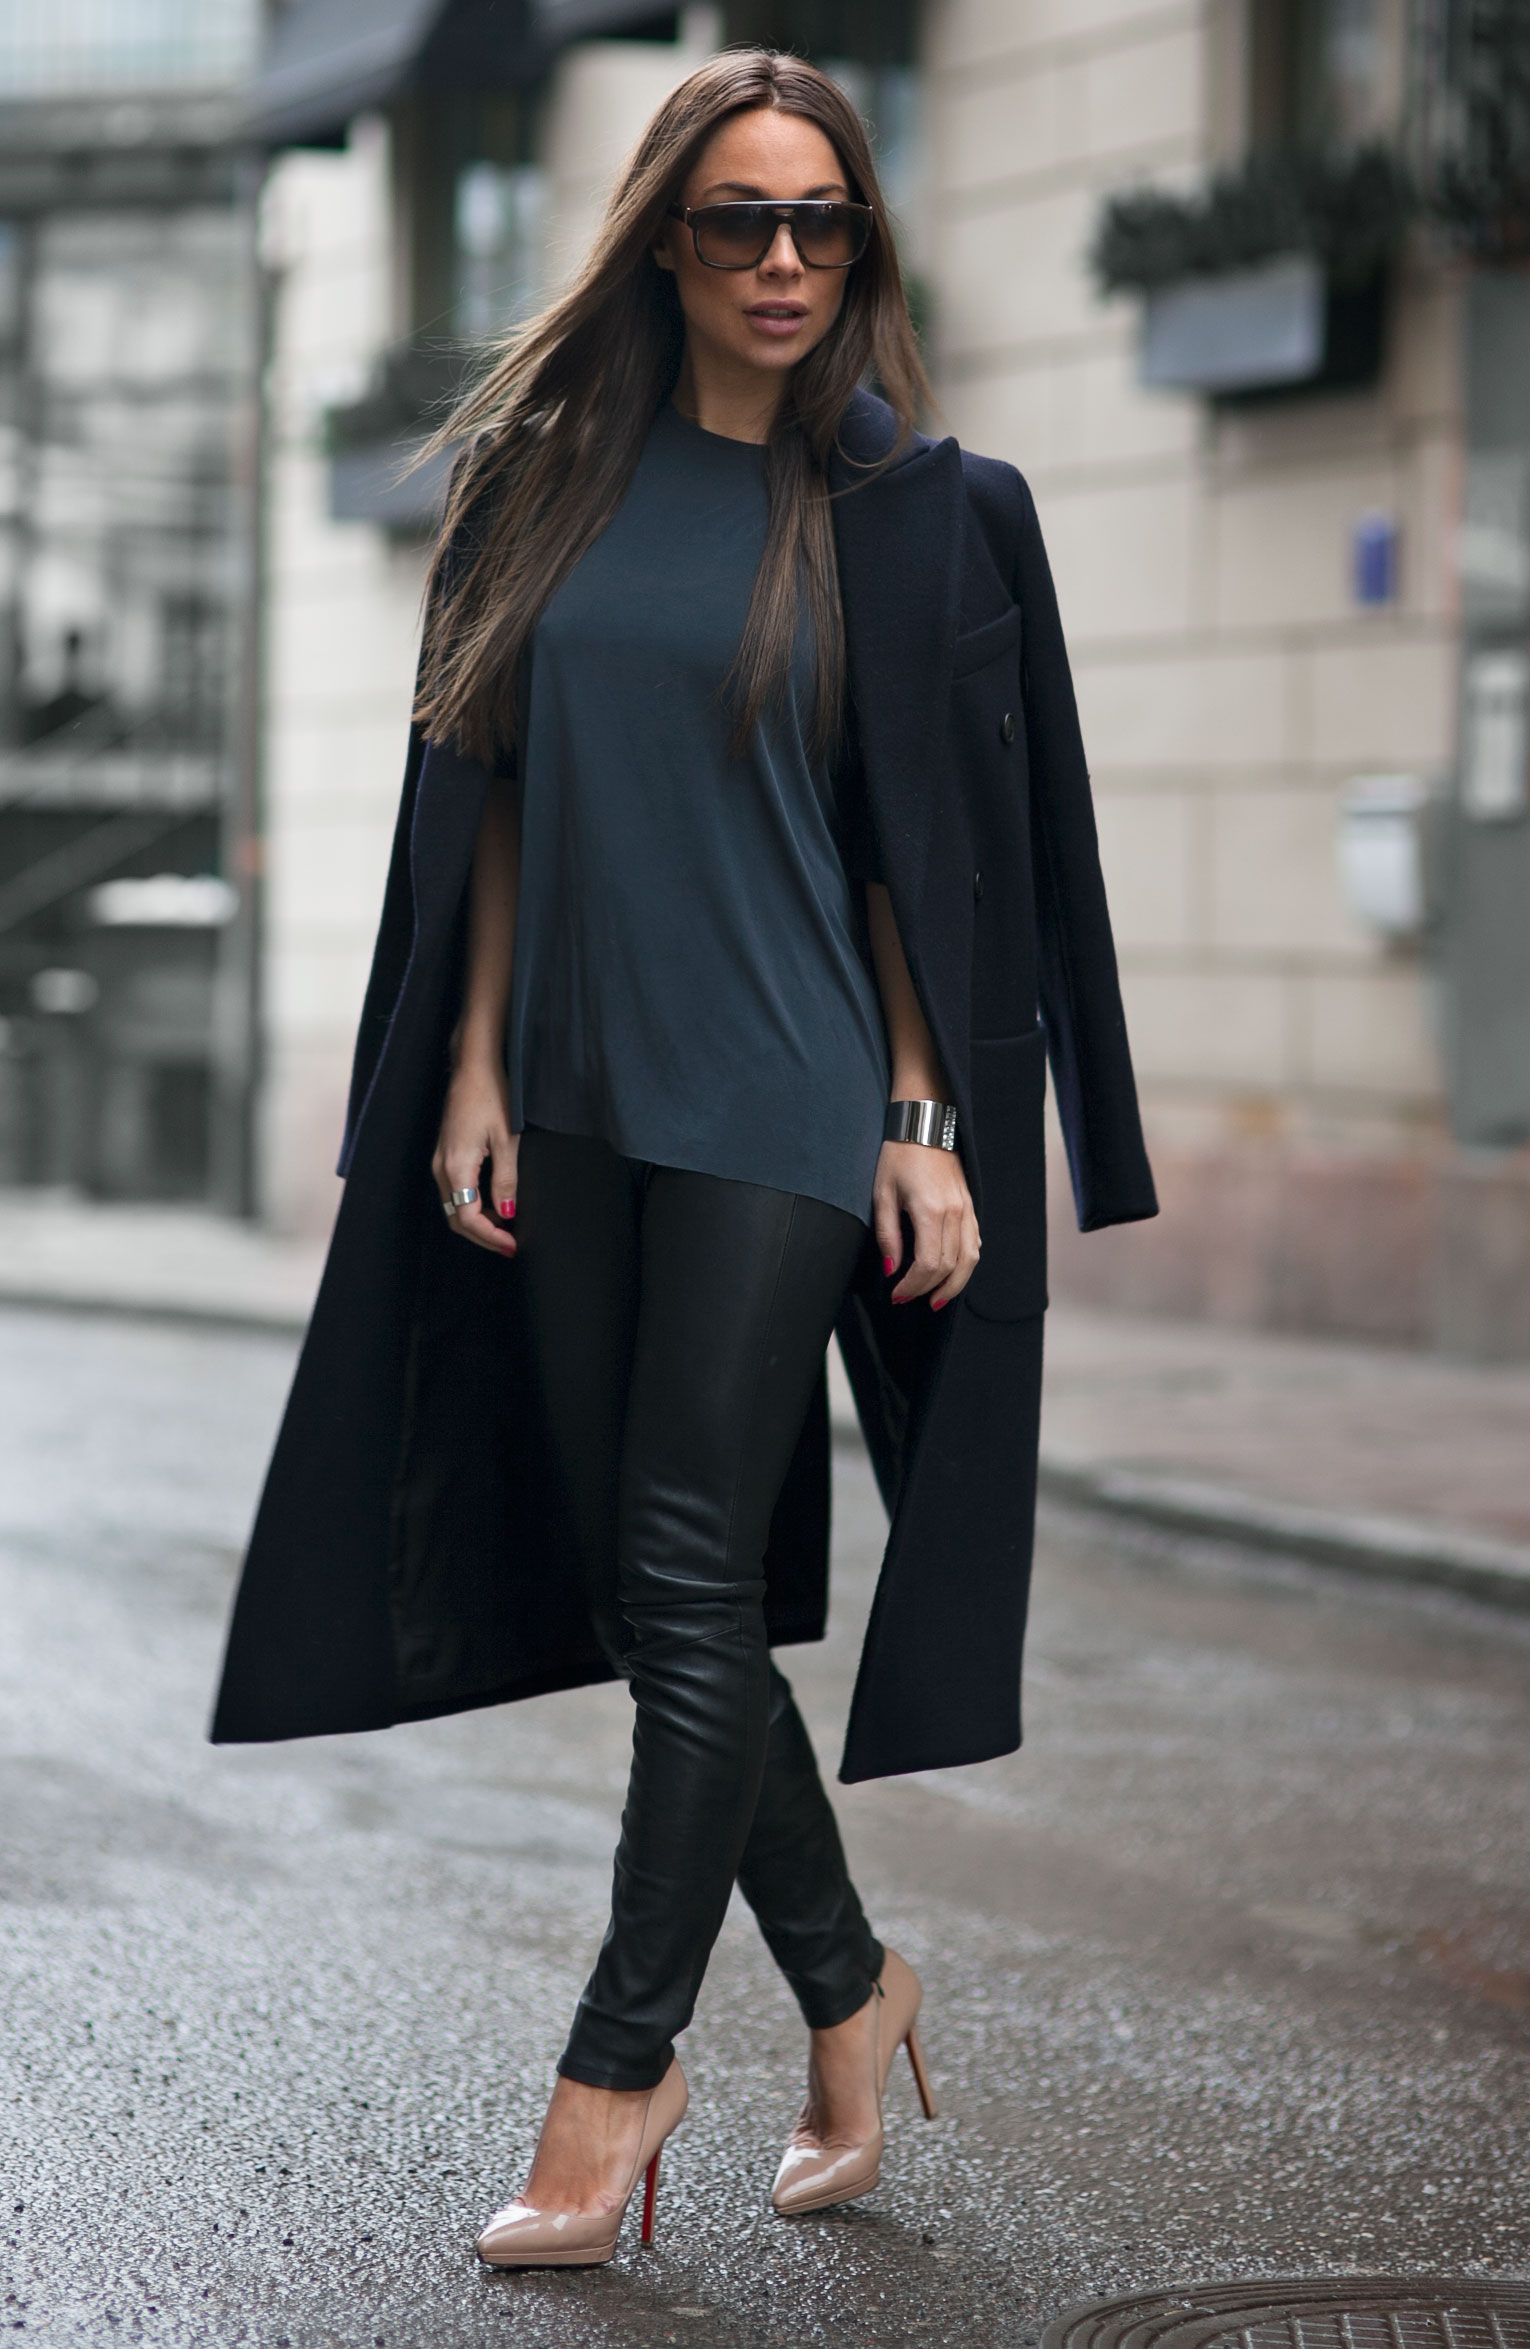 Johanna Olsson is wearing a black long coat from LXLS, T-shirt from Lindex, leather trousers from David Lerner, and the shoes are from Christian Loboutin